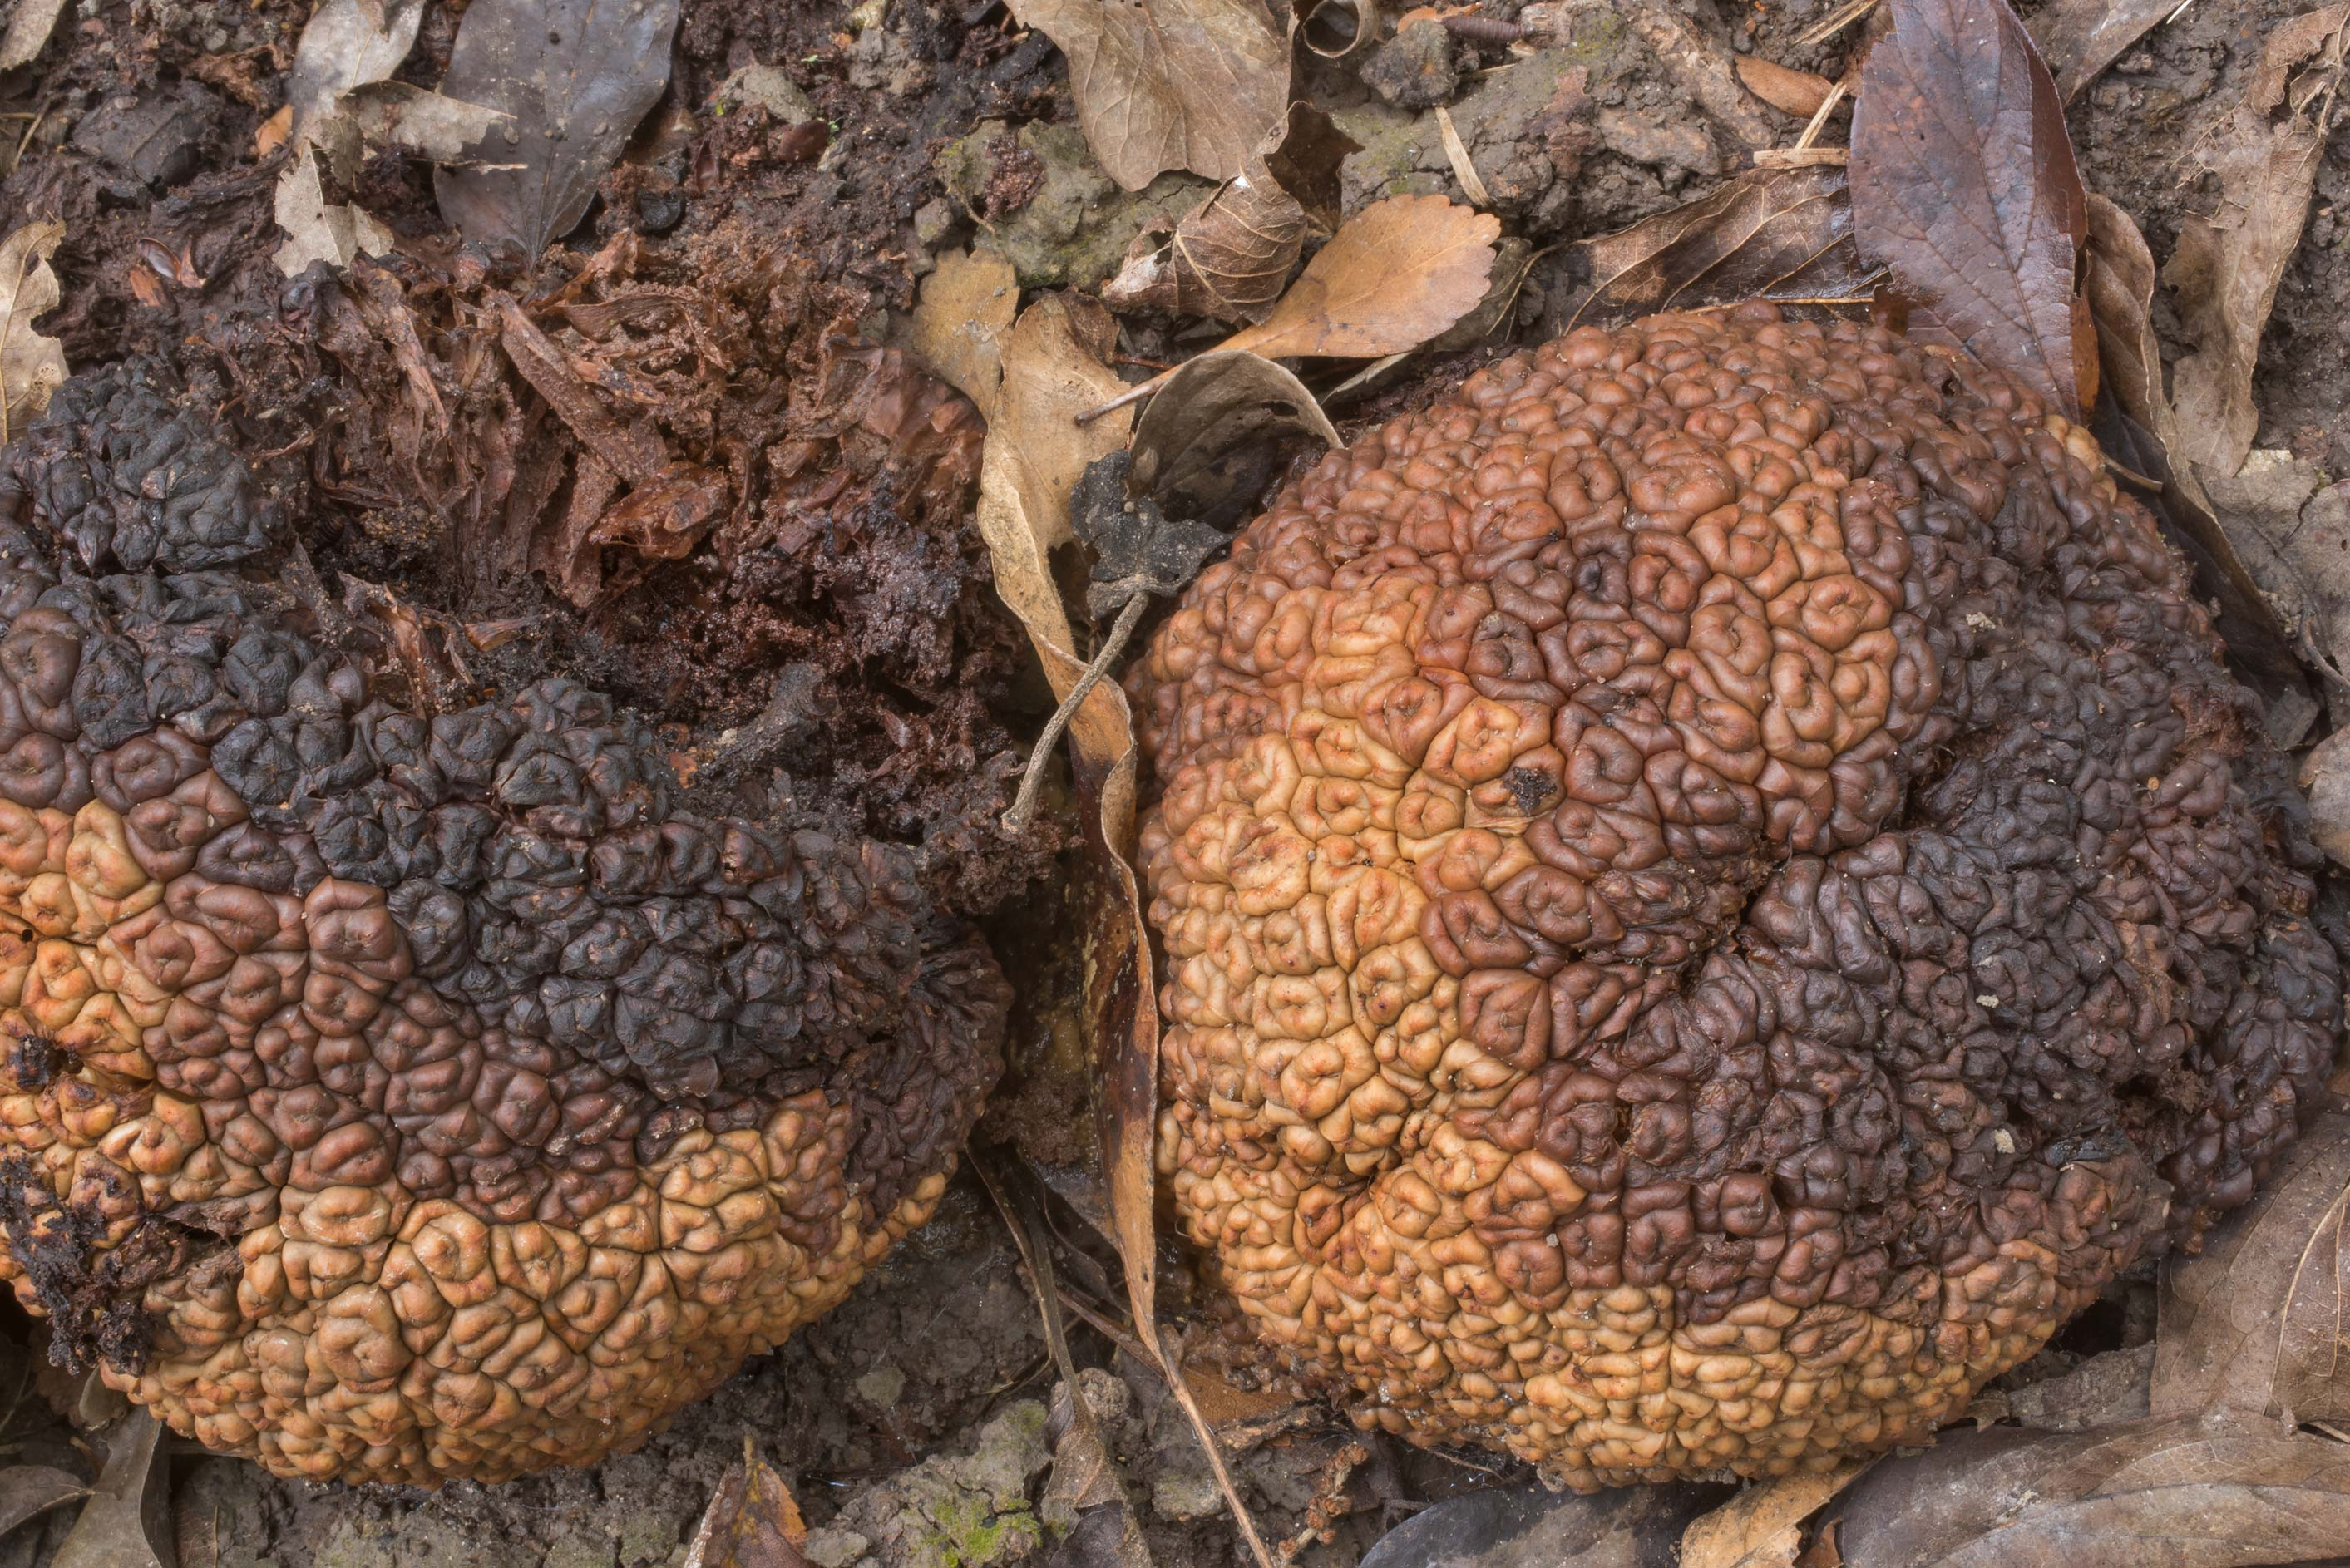 Fallen, decaying fruits of osage orange (hedge...Forest north from Monrgomery. Texas